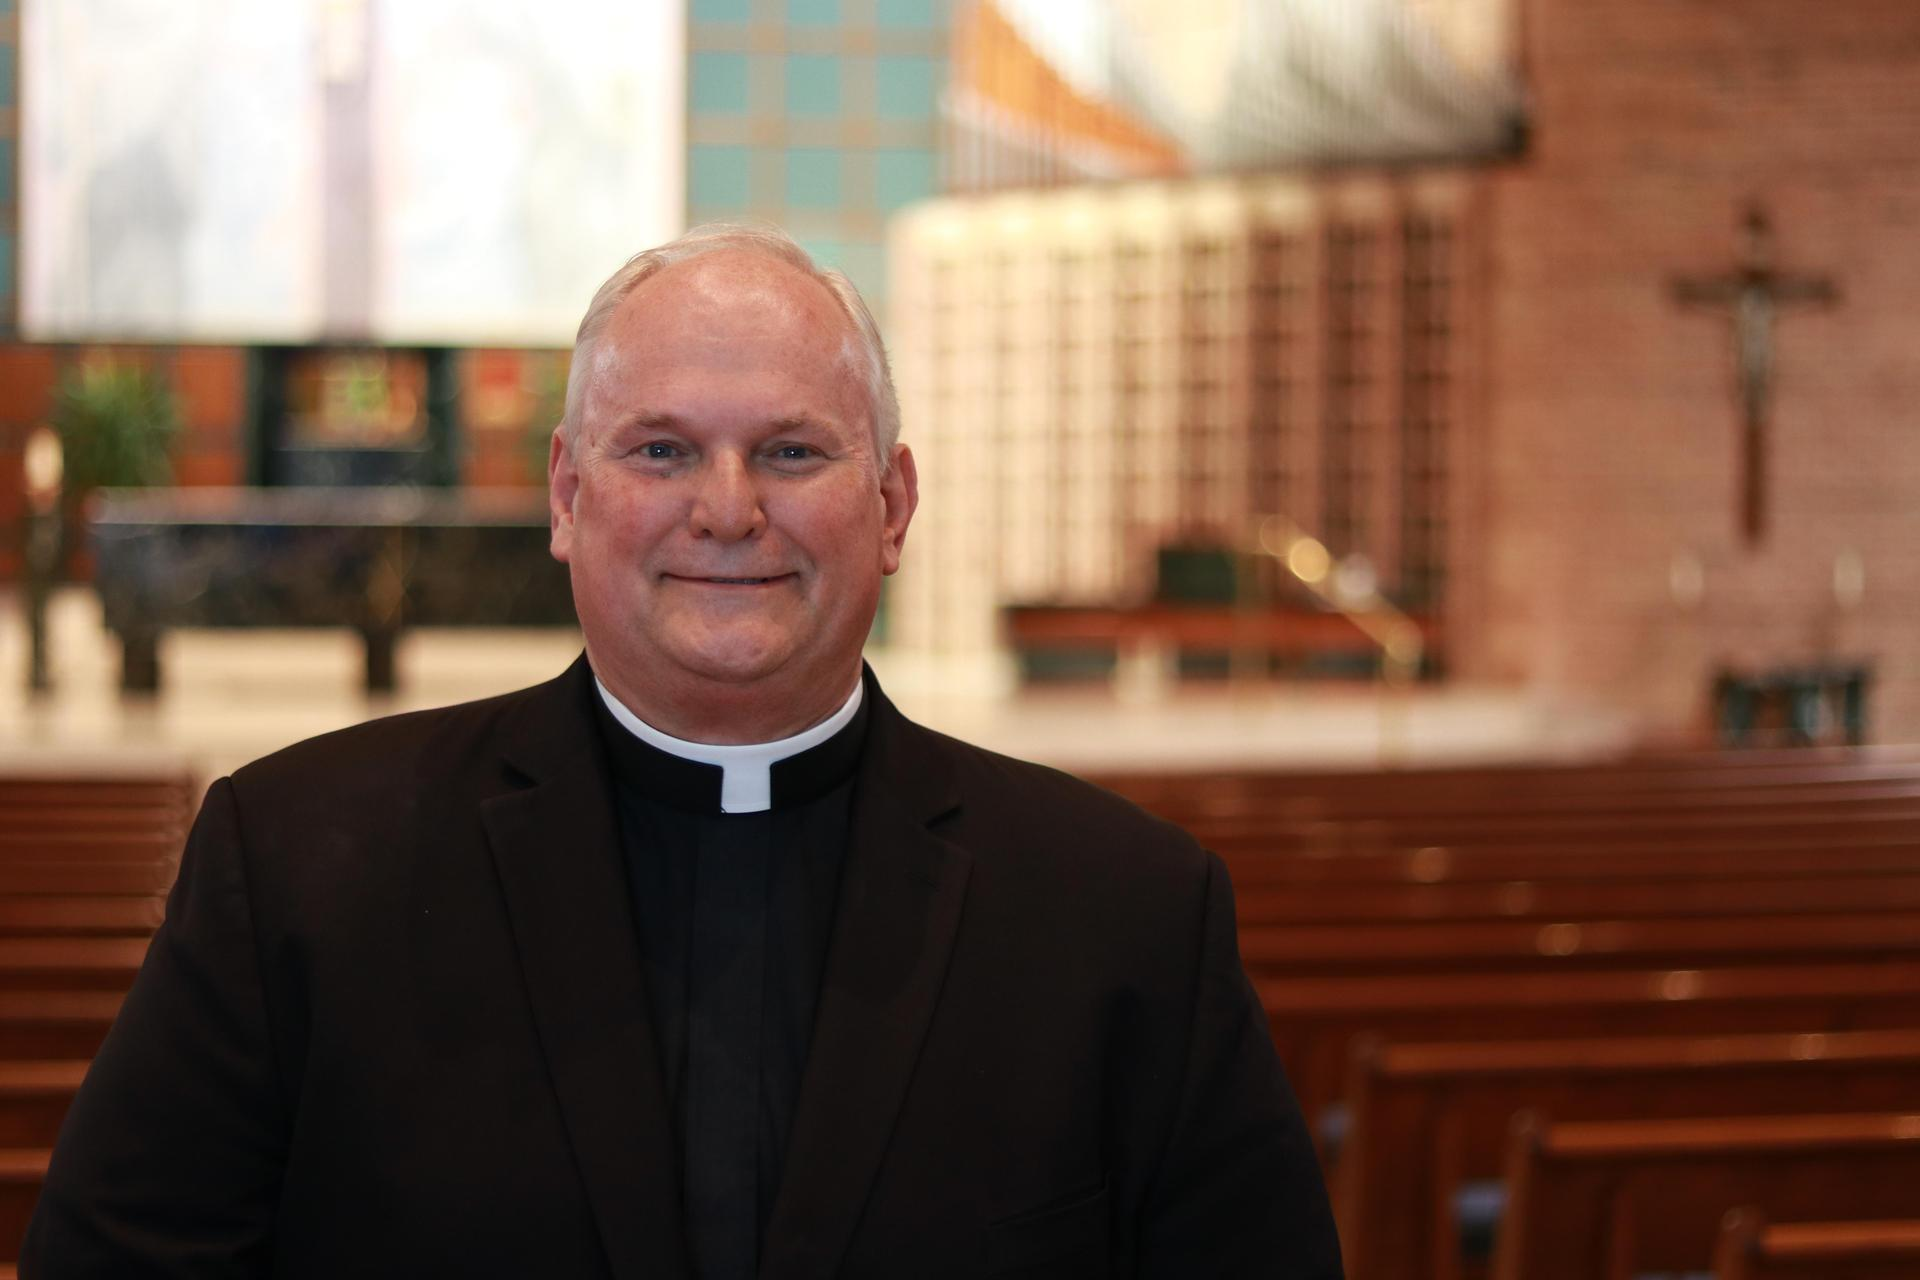 Rev. Mark Brauer